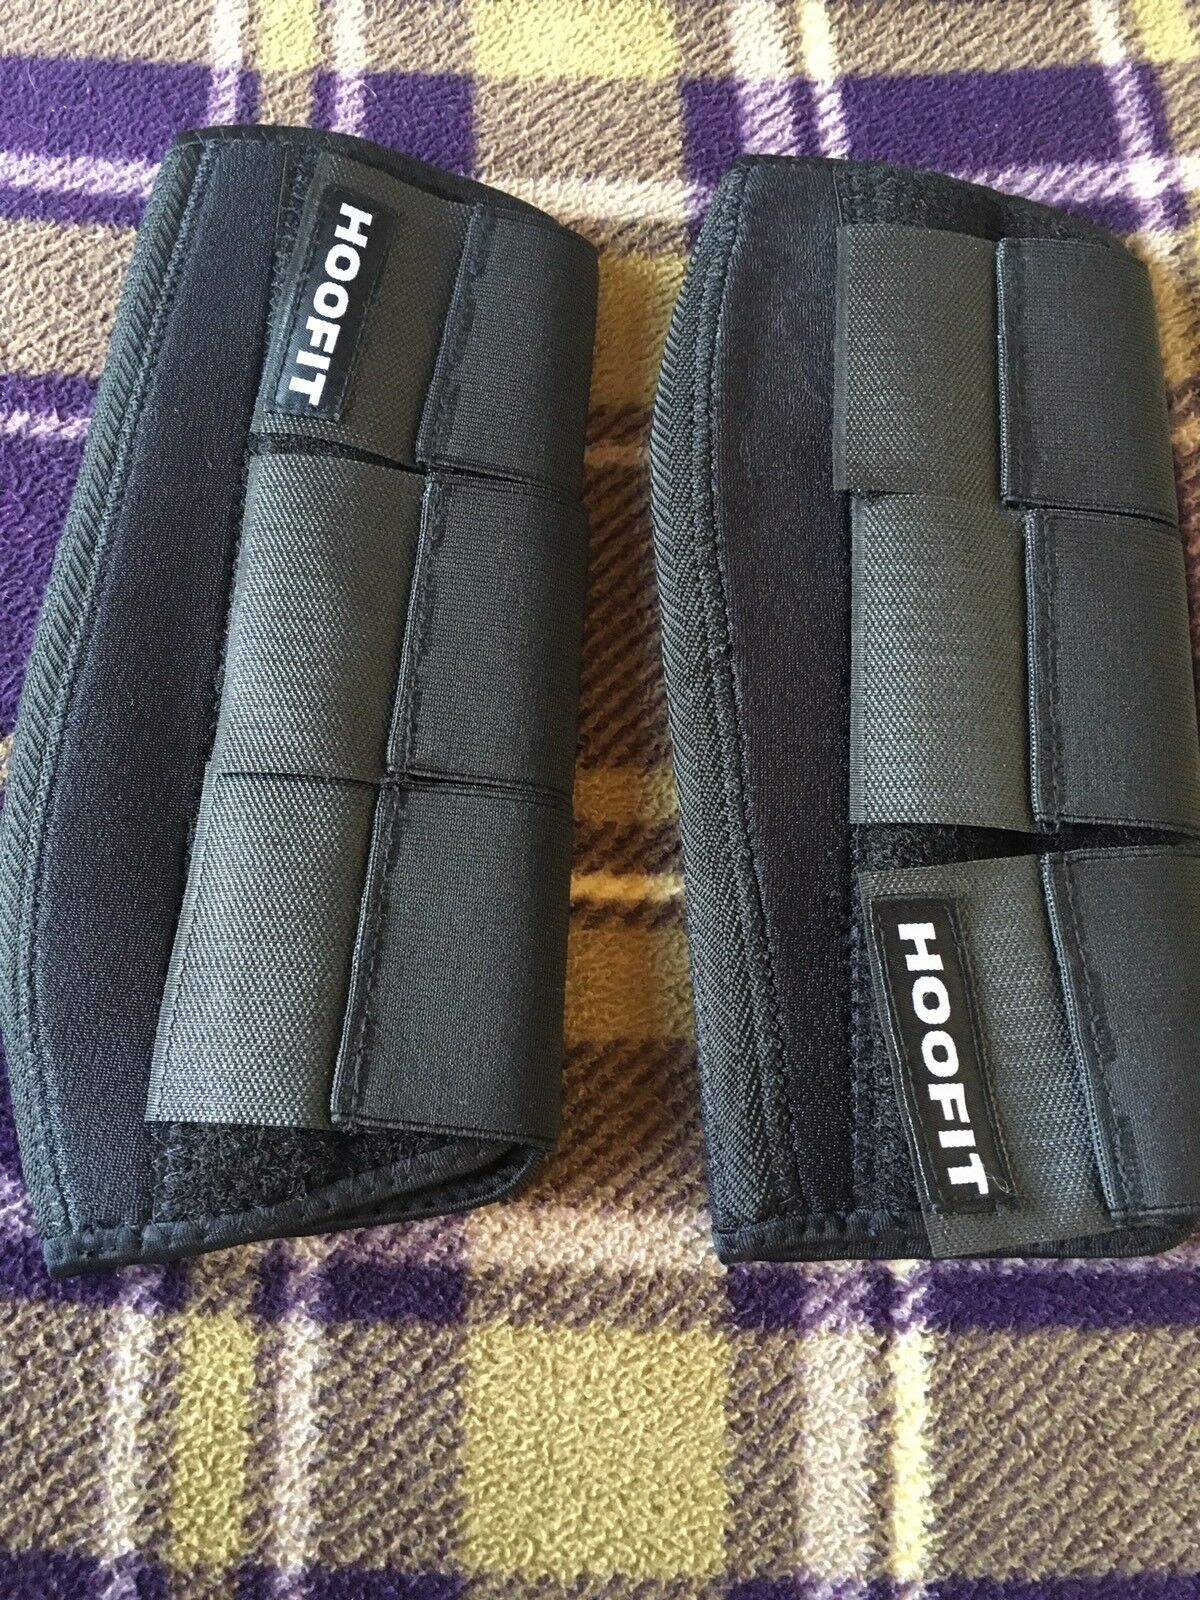 HOOFIT MAGNETIC BOOTS FULL SIZE -PAIR-FAST RECORDED POSTAGE